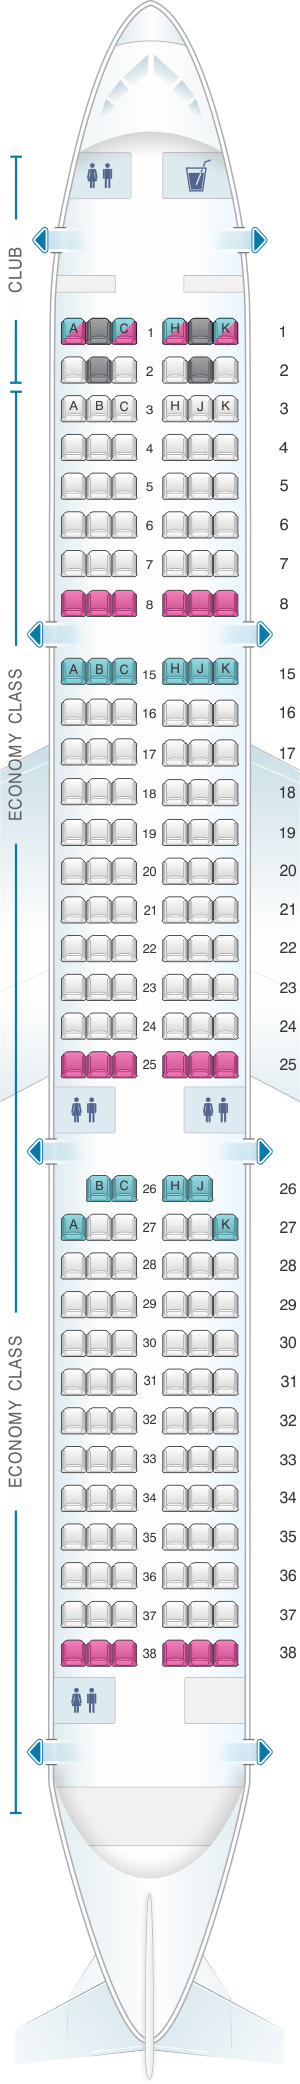 Seat map for Air Transat Airbus A321 Canada